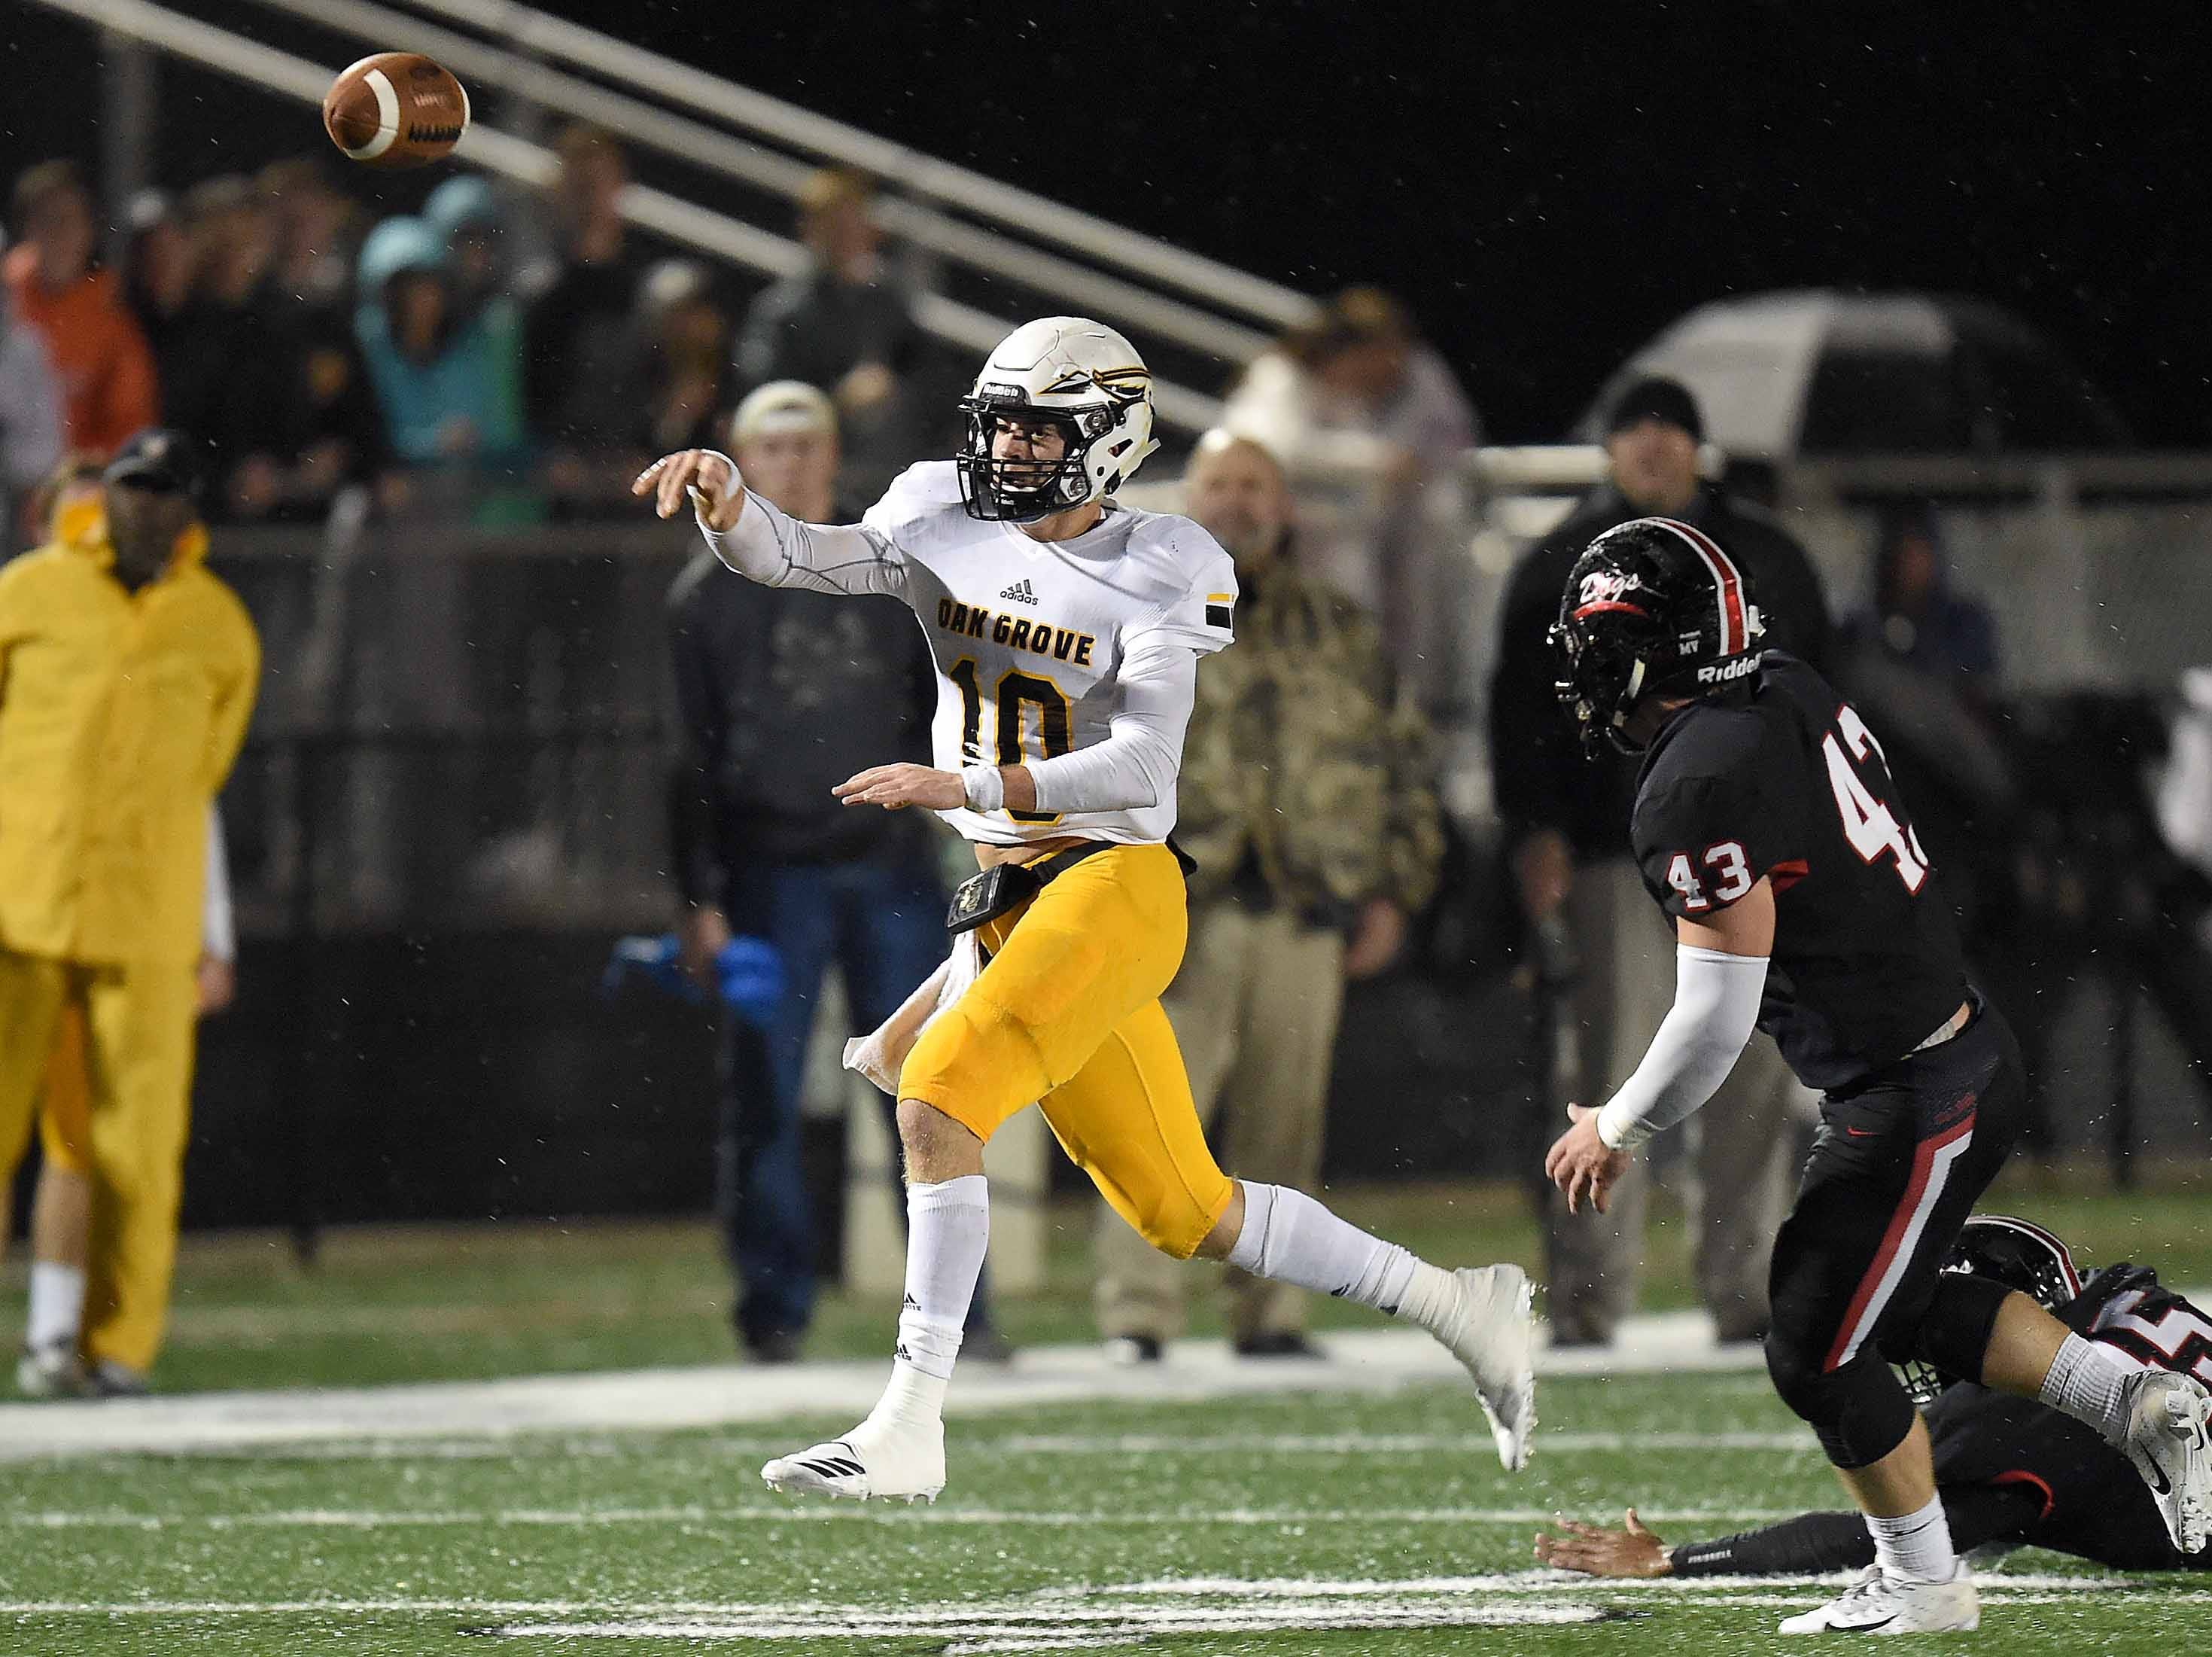 Oak Grove quarterback John Rhys Plumlee (left) throws after scrambling against Brandon in the MHSAA Class 6A South State Championship on Friday, November 23, 2018, at Brandon High School in Brandon, Miss.